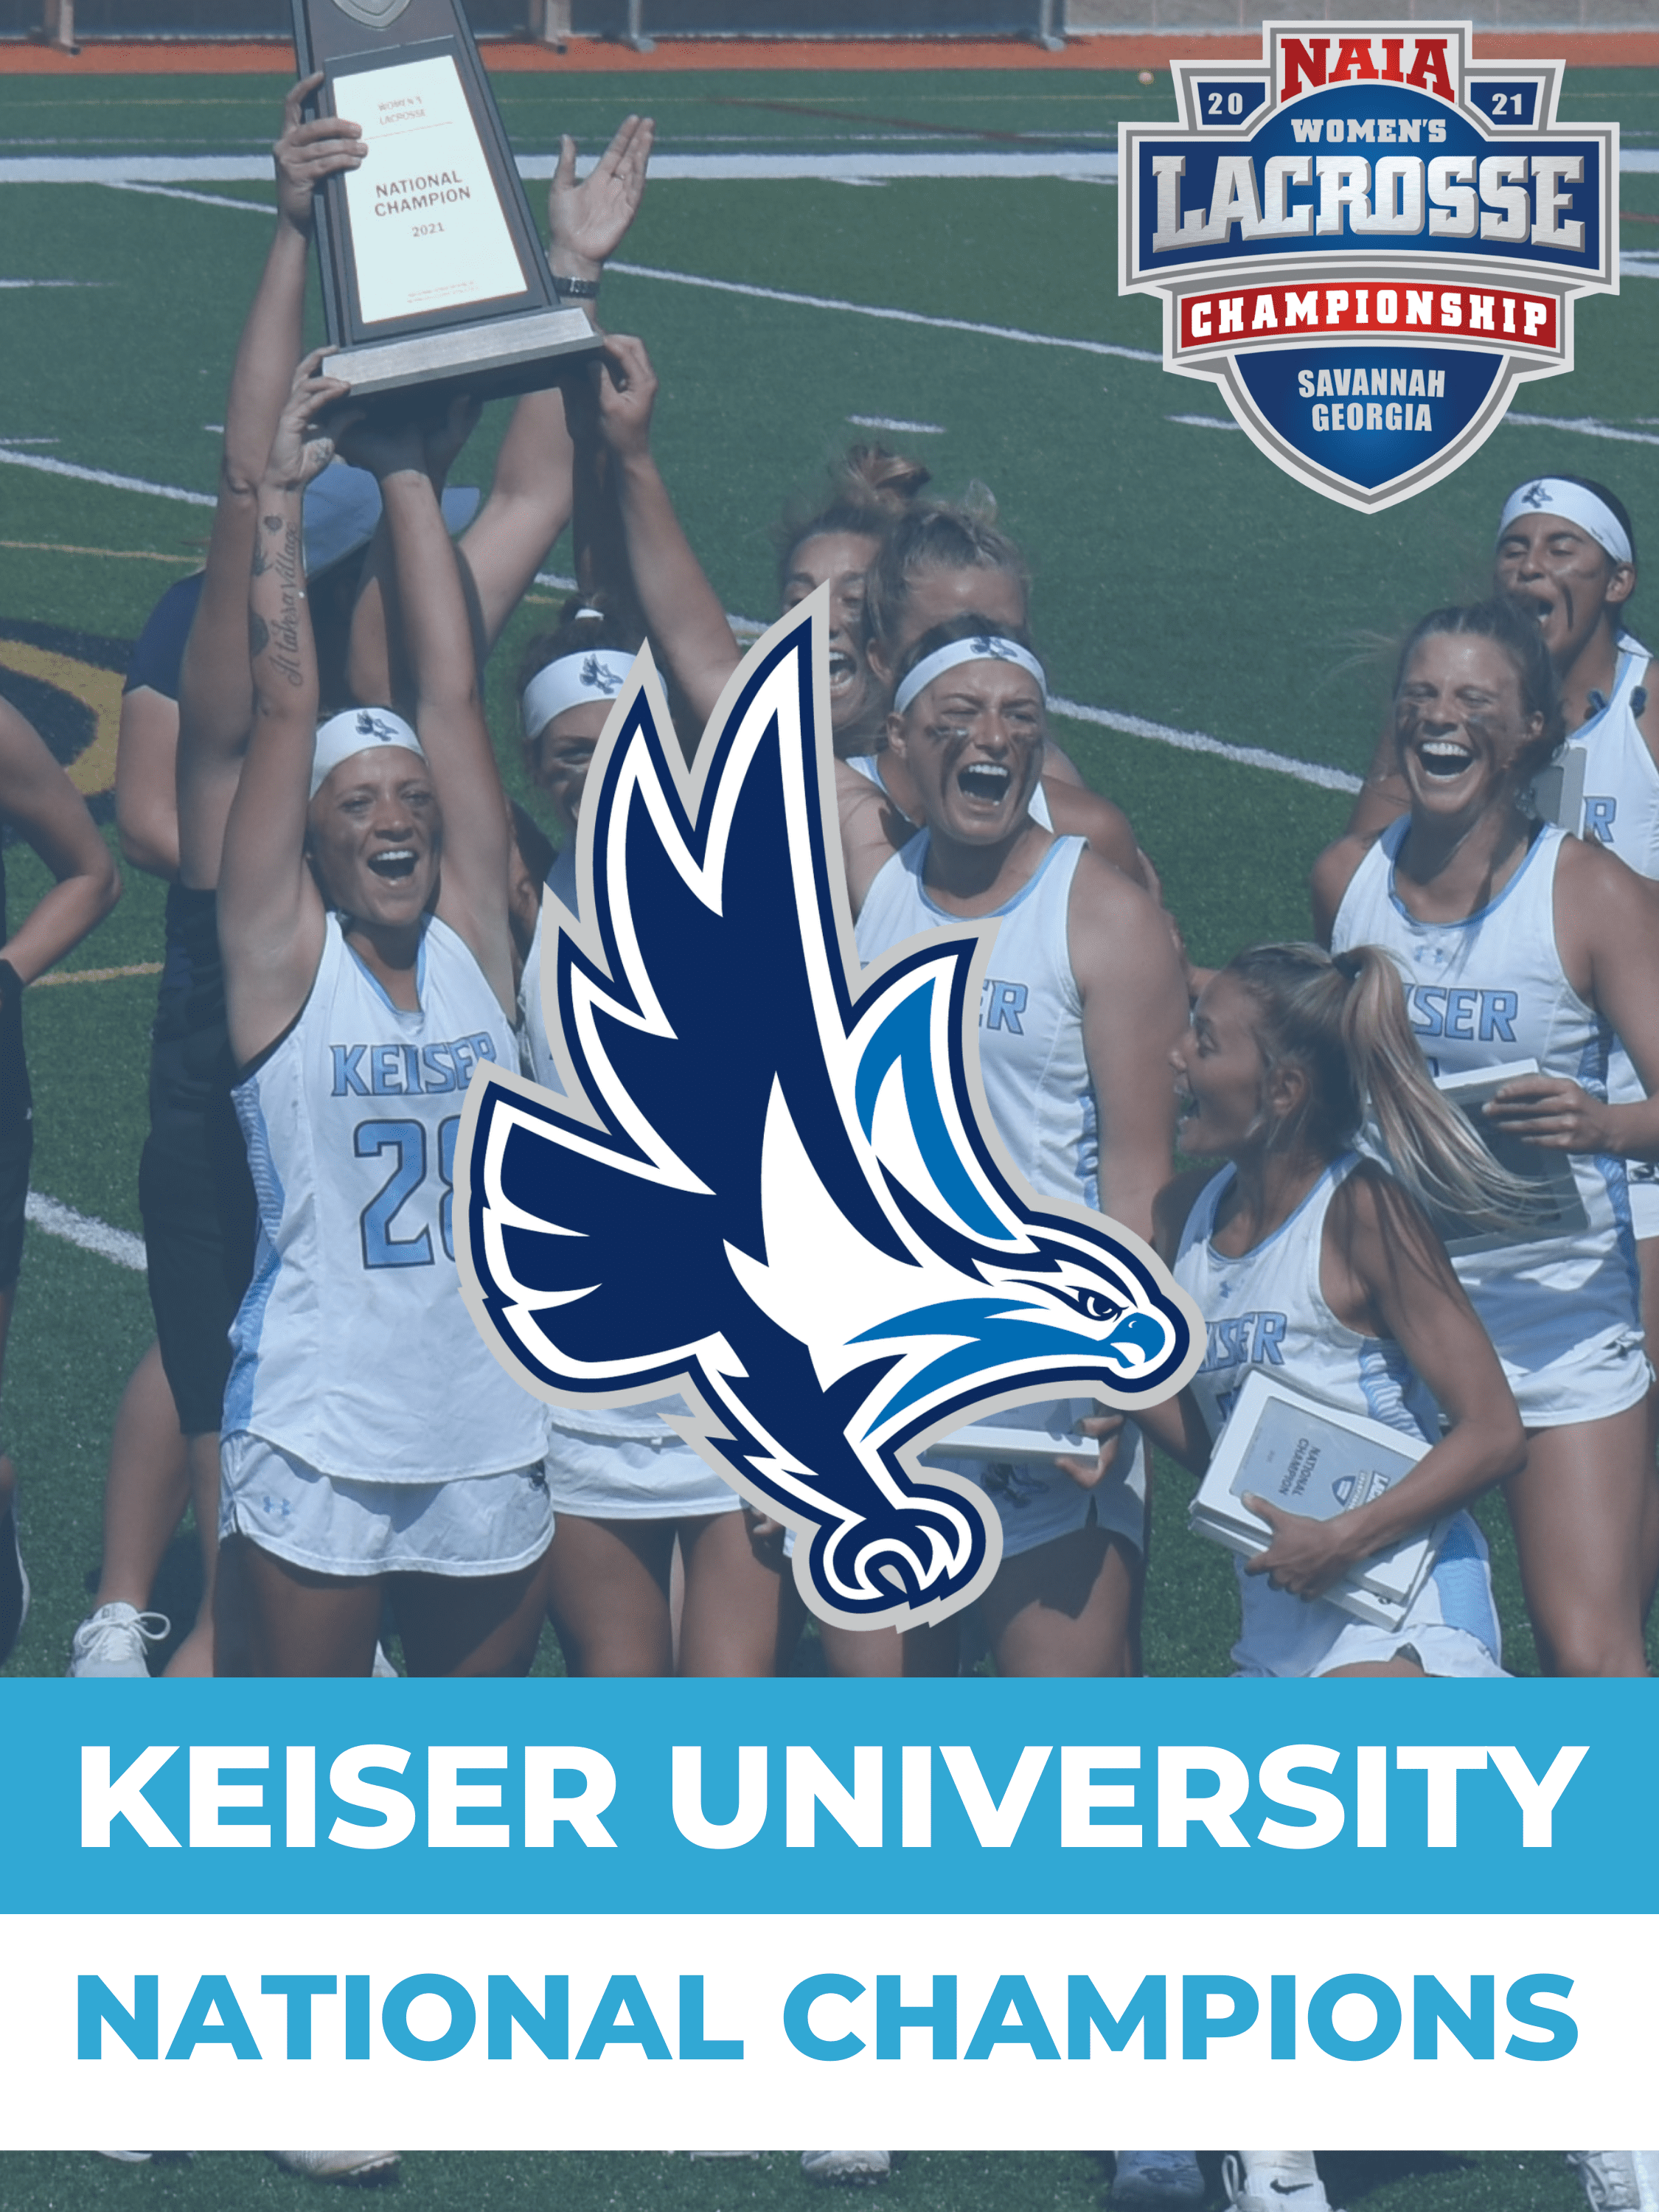 Keiser NAIA Women's Lacrosse National Champions